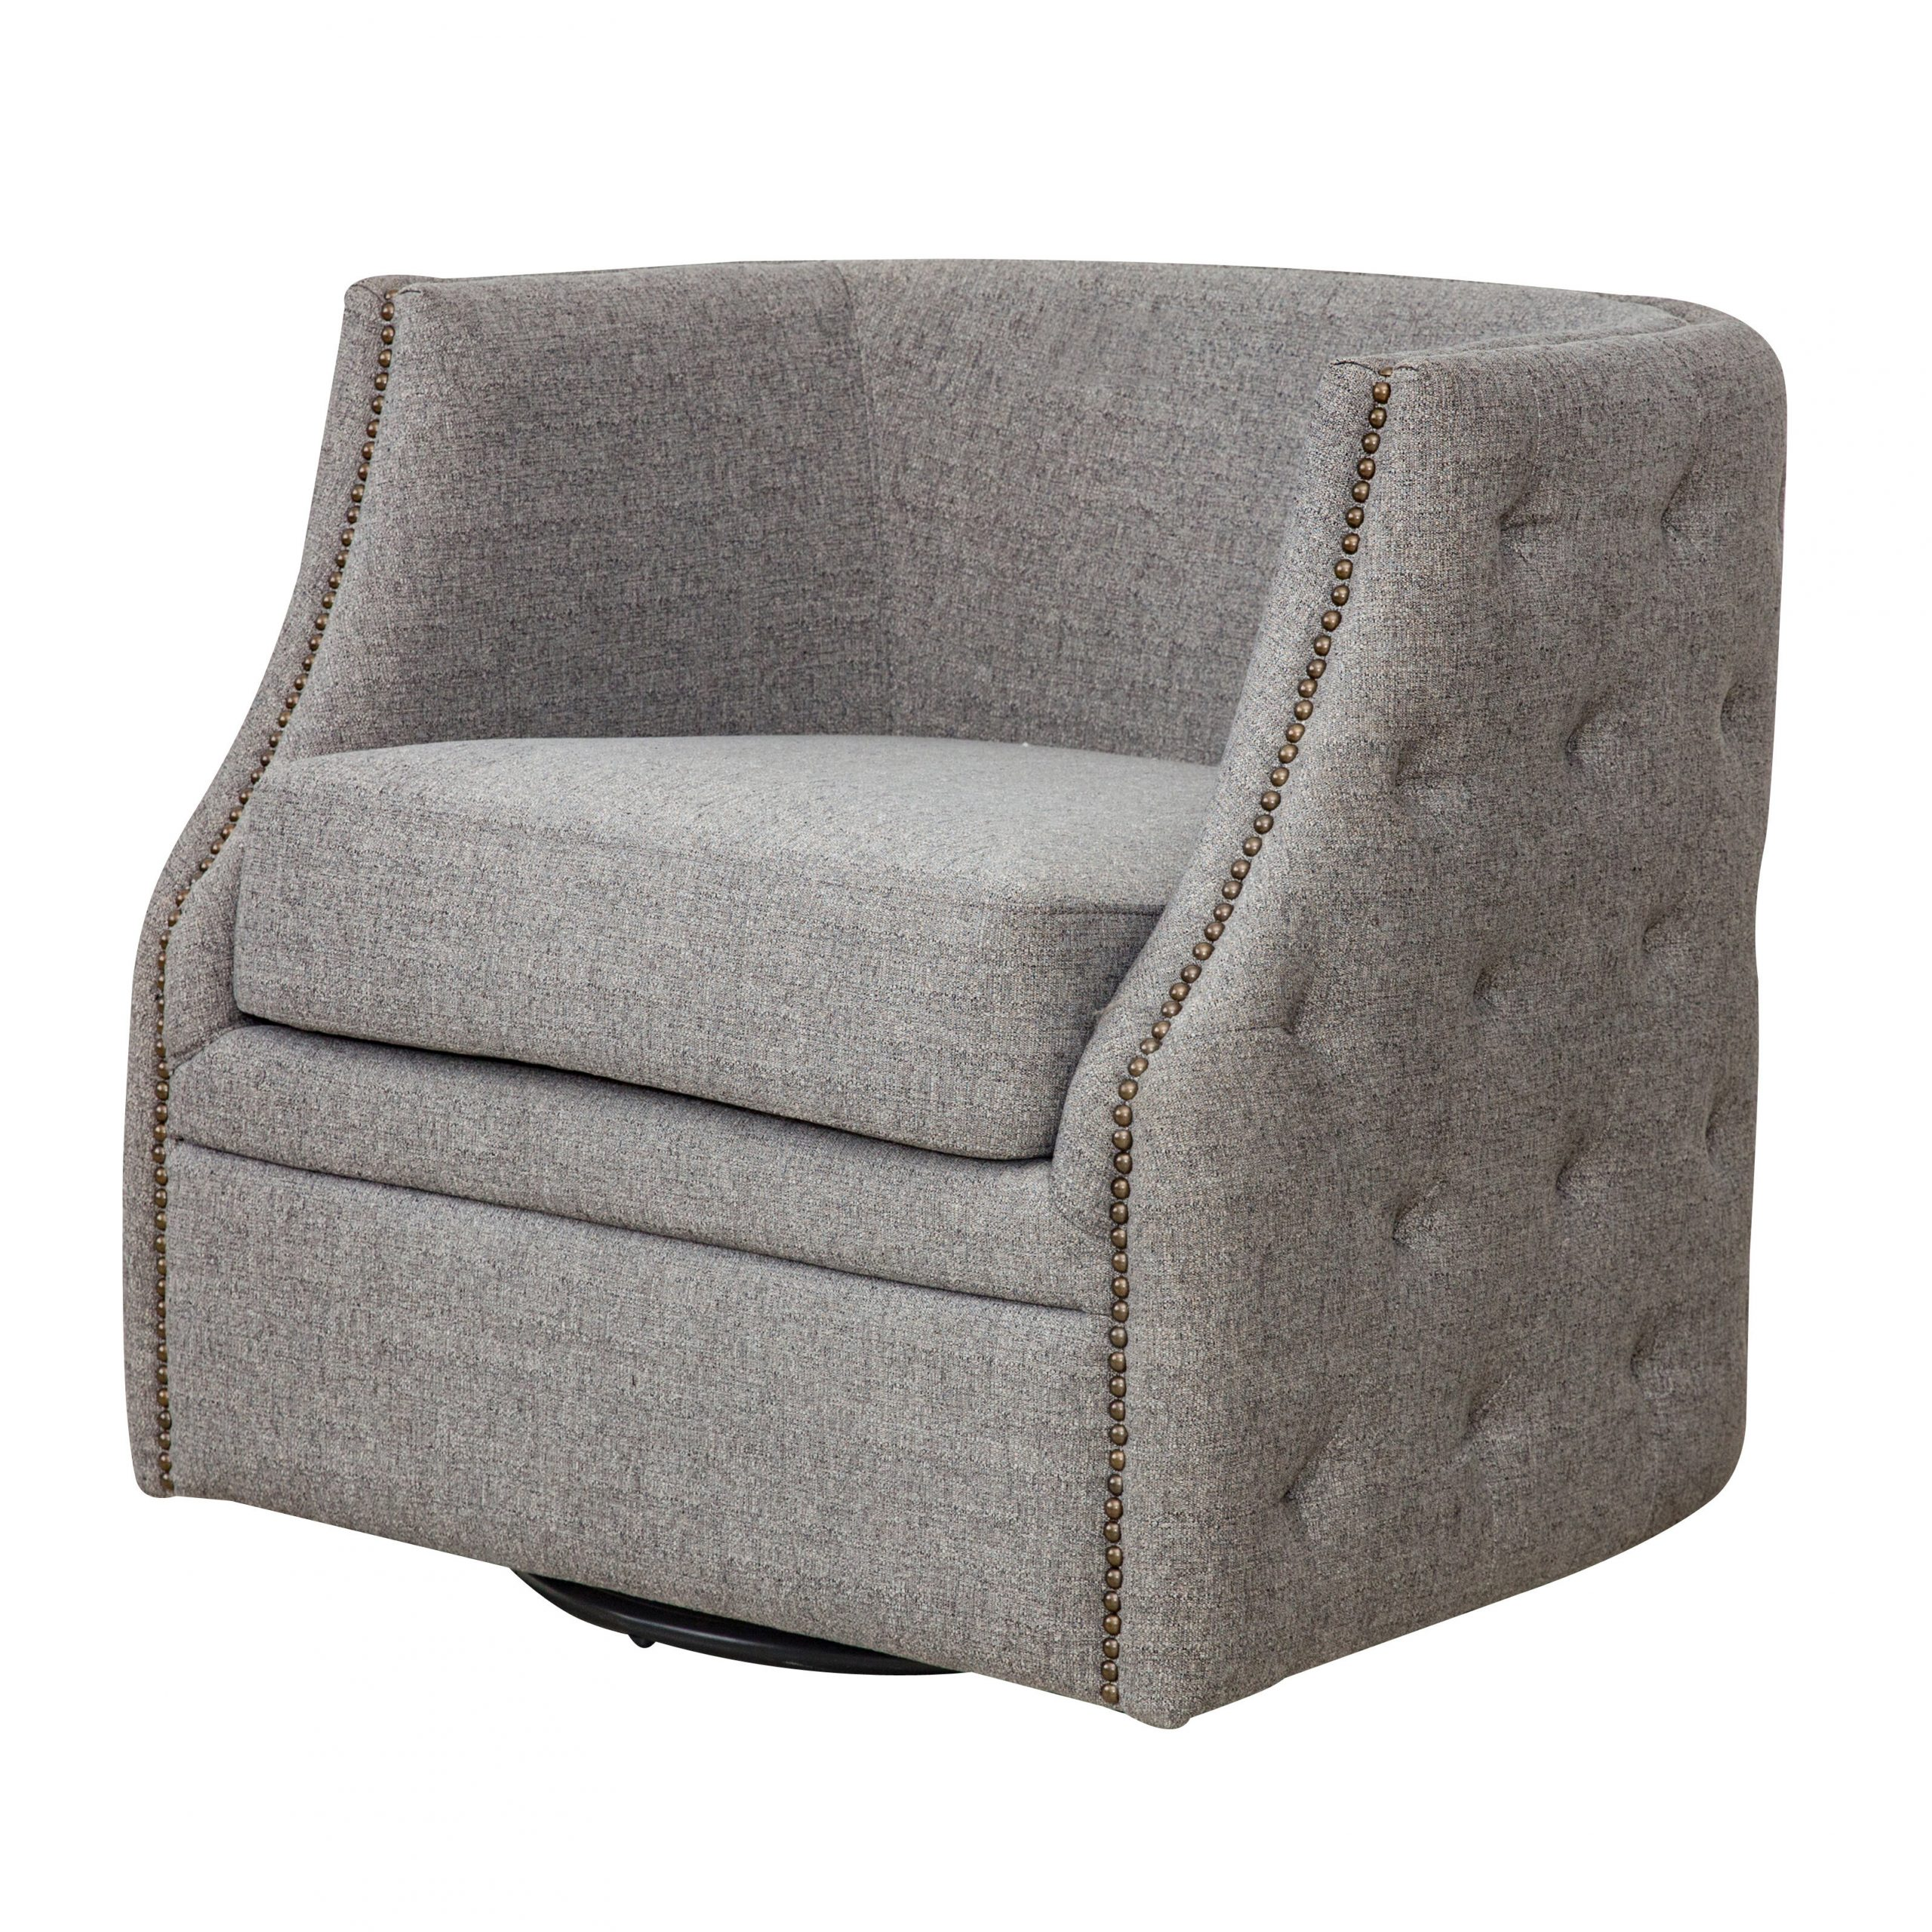 Dichiera Swivel Armchair With Portmeirion Armchairs (View 9 of 15)